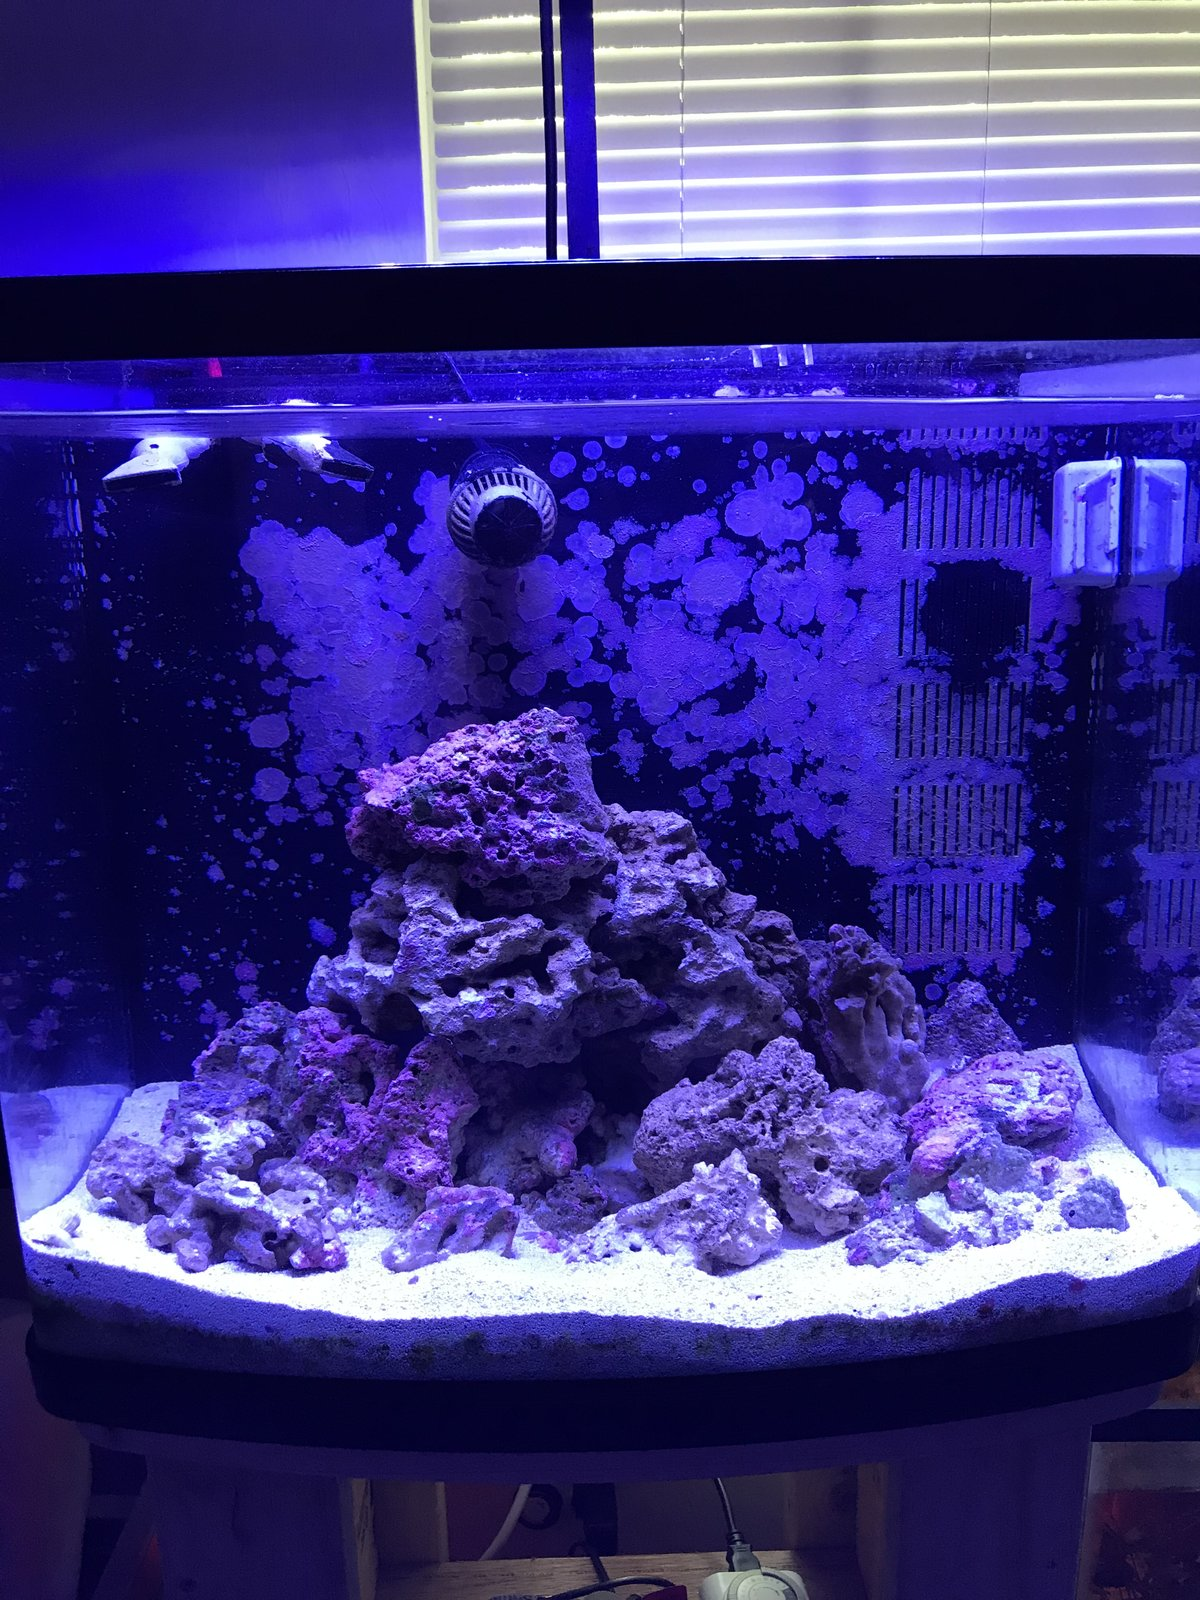 Bought Biocube off of Craigslist   Help - Beginners